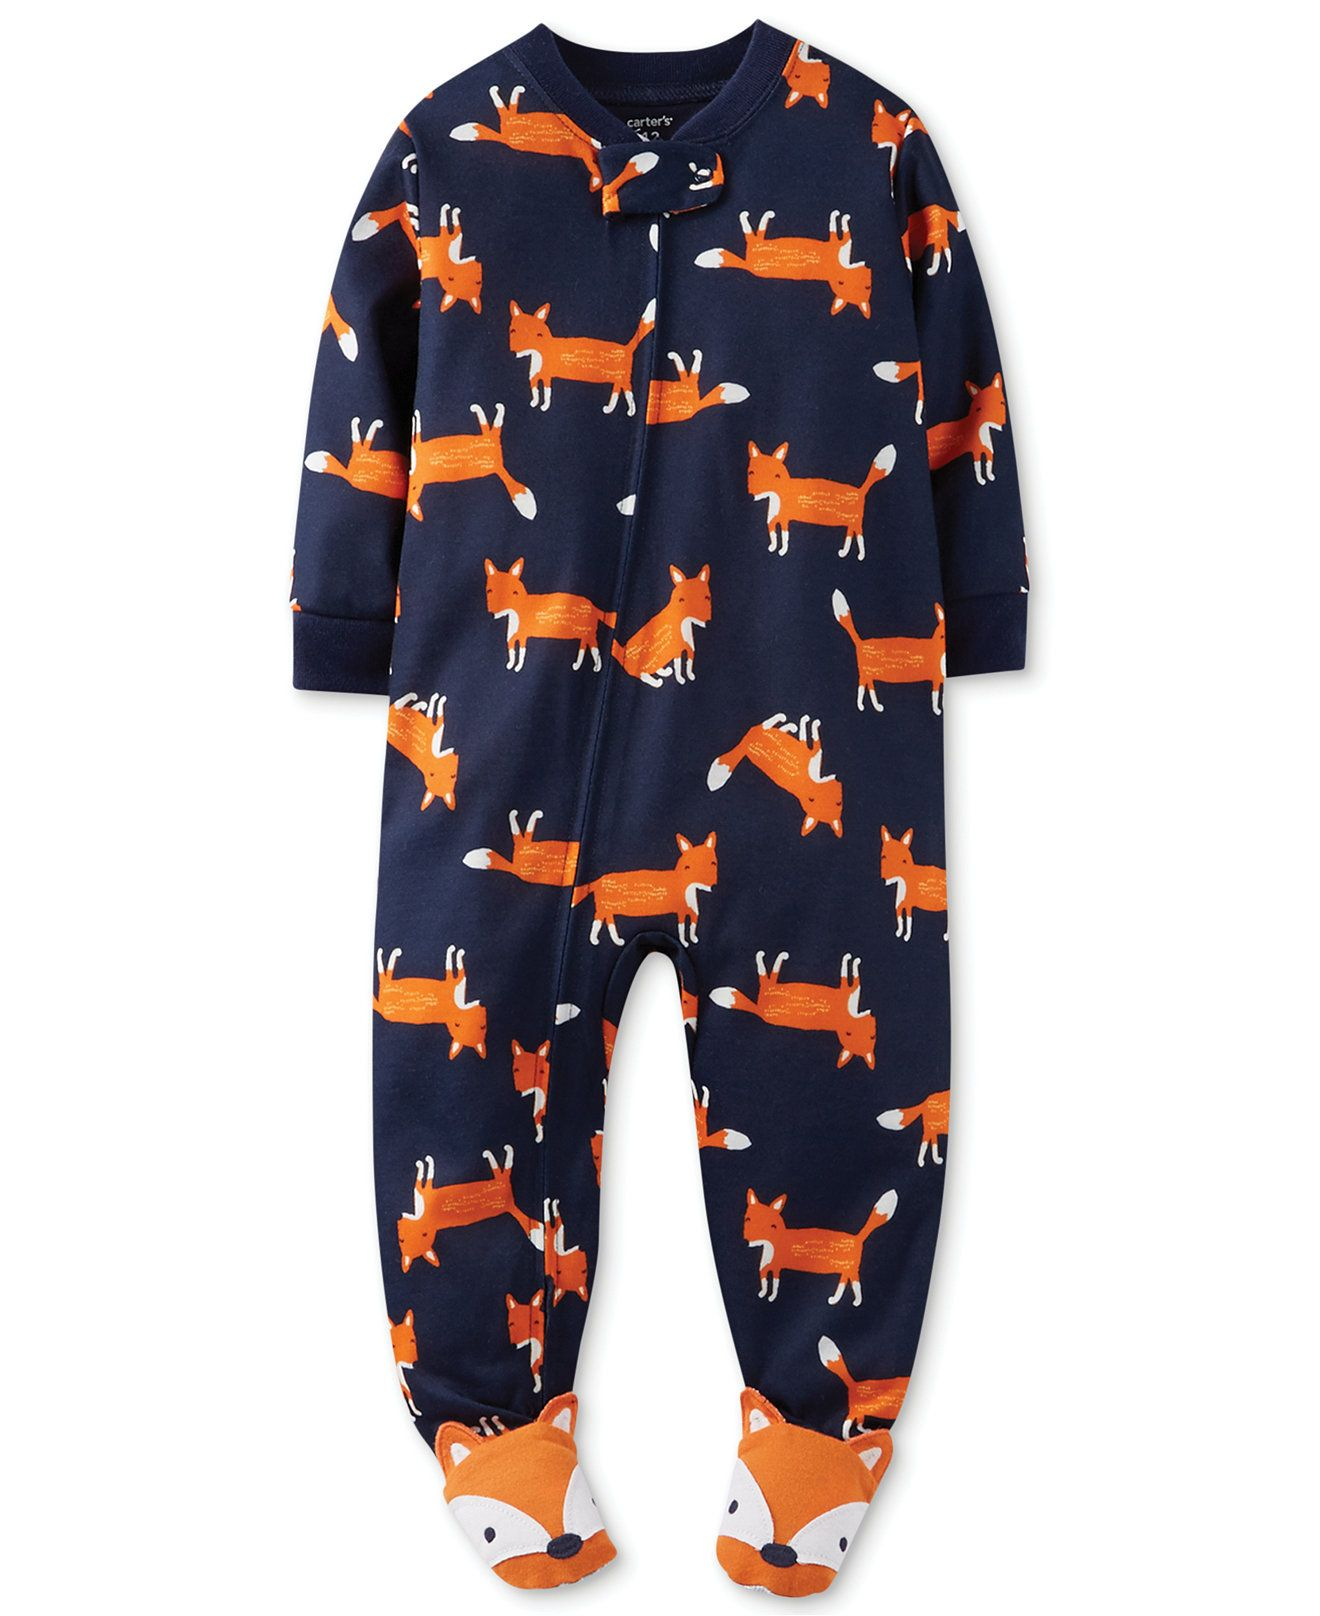 51c030ebe Carter's Baby Boys' Fox Coverall Pajamas - Kids Baby Boy (0-24 months) -  Macy's on sale for $9